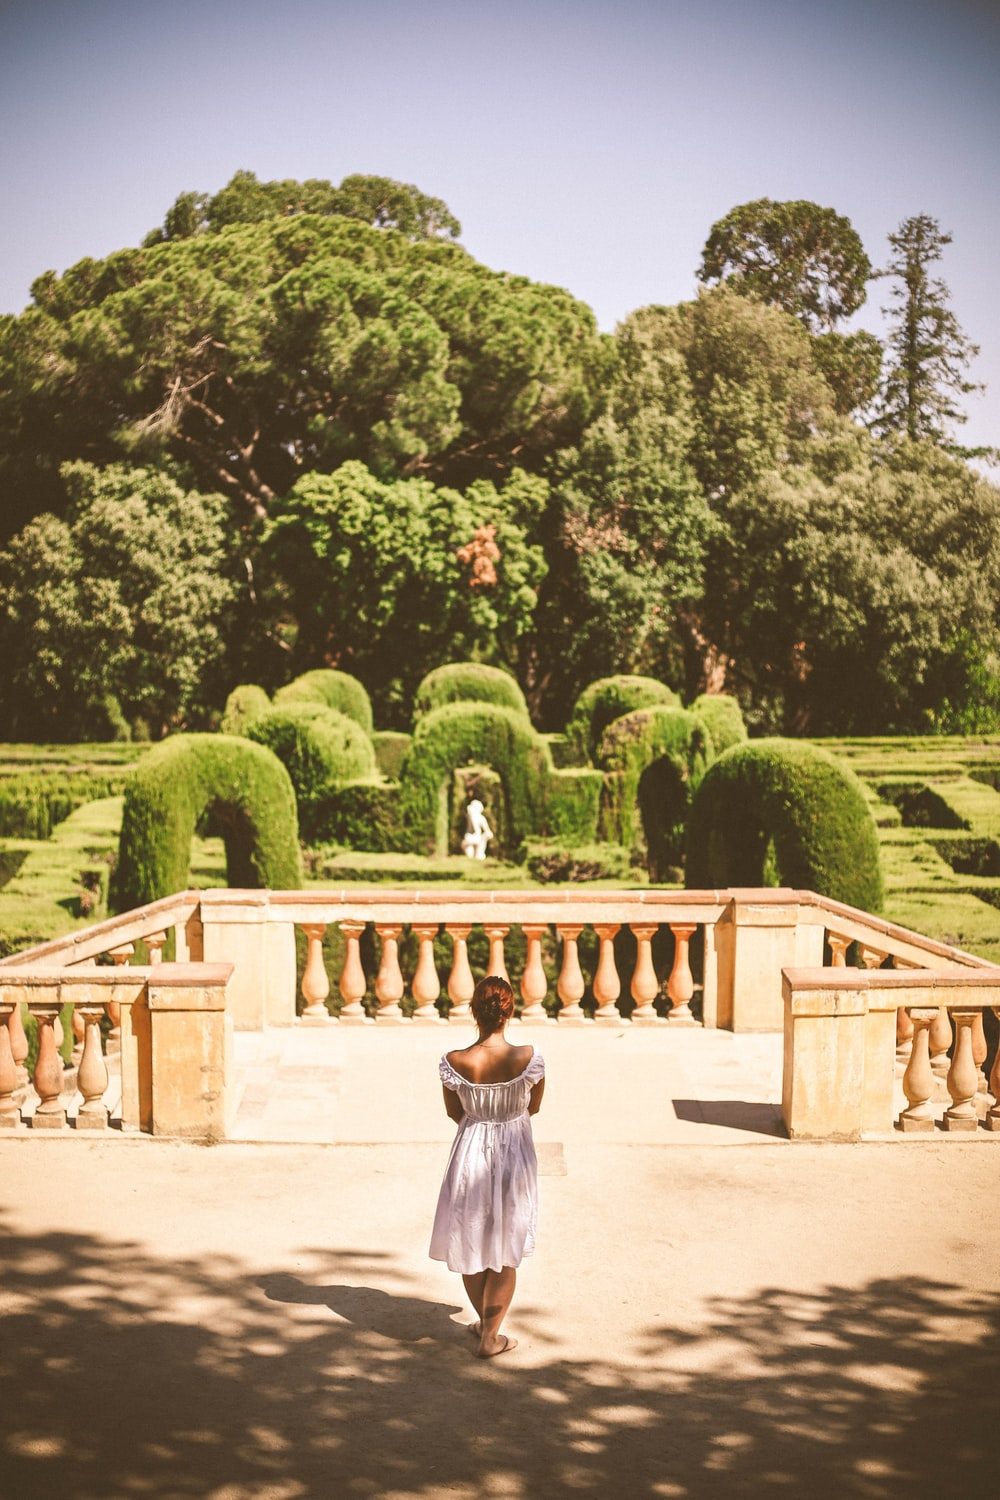 woman in white dress standing near green trees during daytime